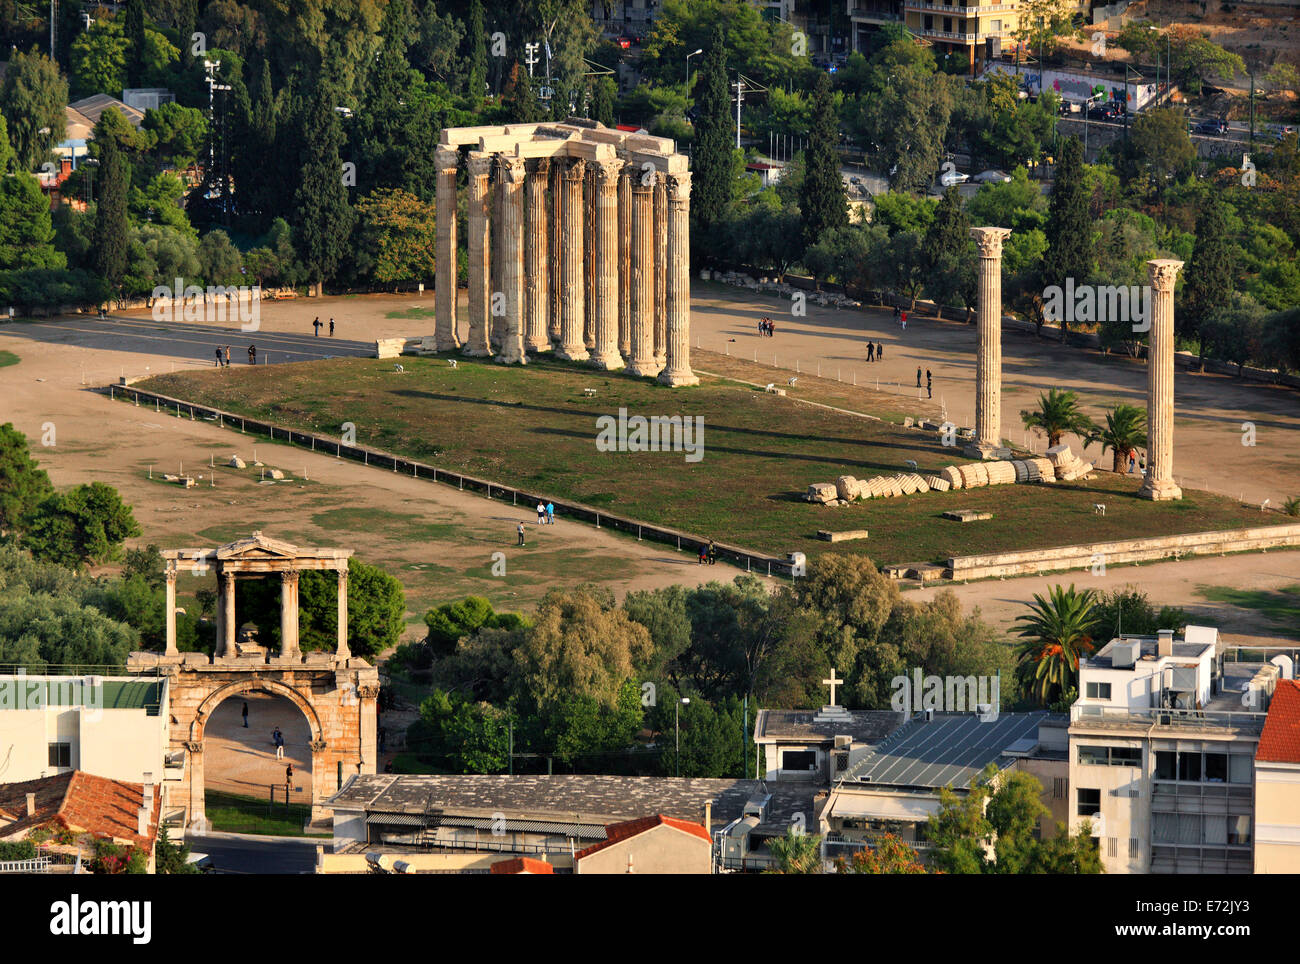 View of the Temple of Olympian Zeus and Hadrian's Gate from the Acropolis, Athens, Greece. - Stock Image